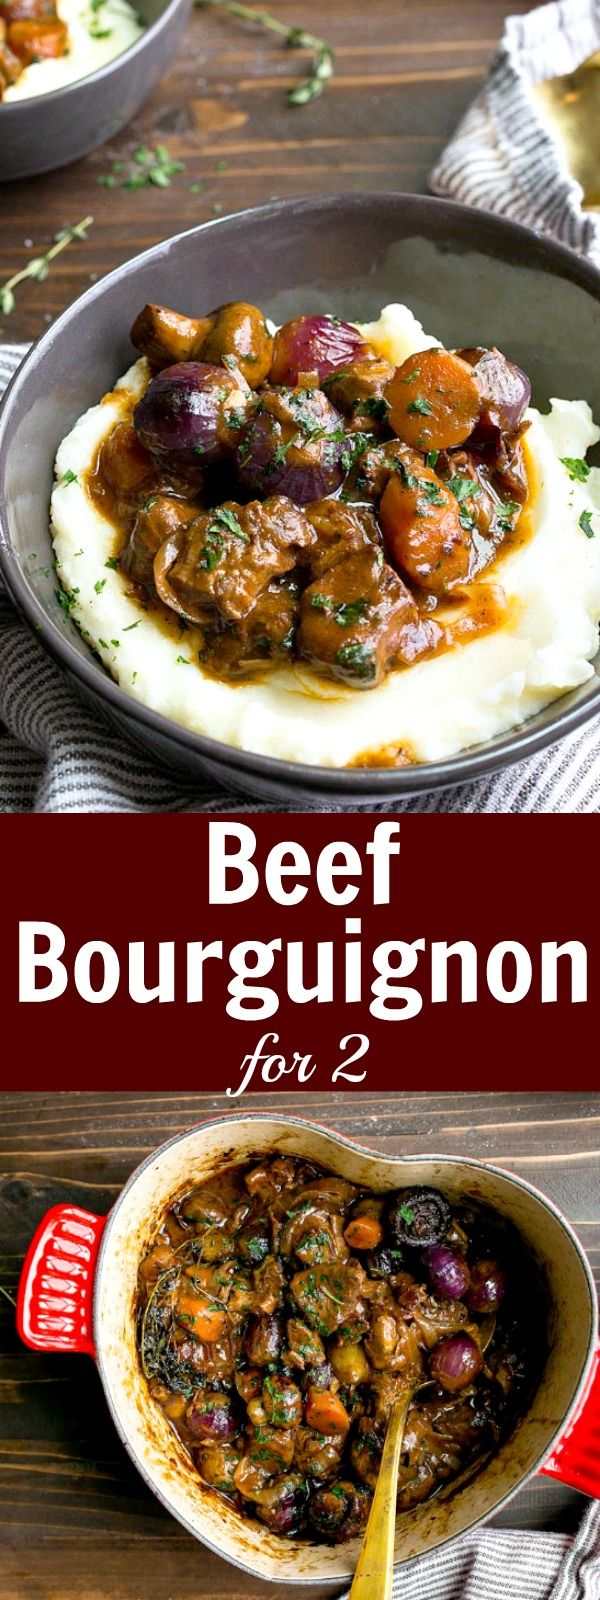 Classic French Beef Bourguignon for Two. Classic Beef Burgundy stew made with beef, red wine, whole mushrooms and baby pearl onions. Romantic dinner for two people for Valentine's Day! via @dessertfortwo